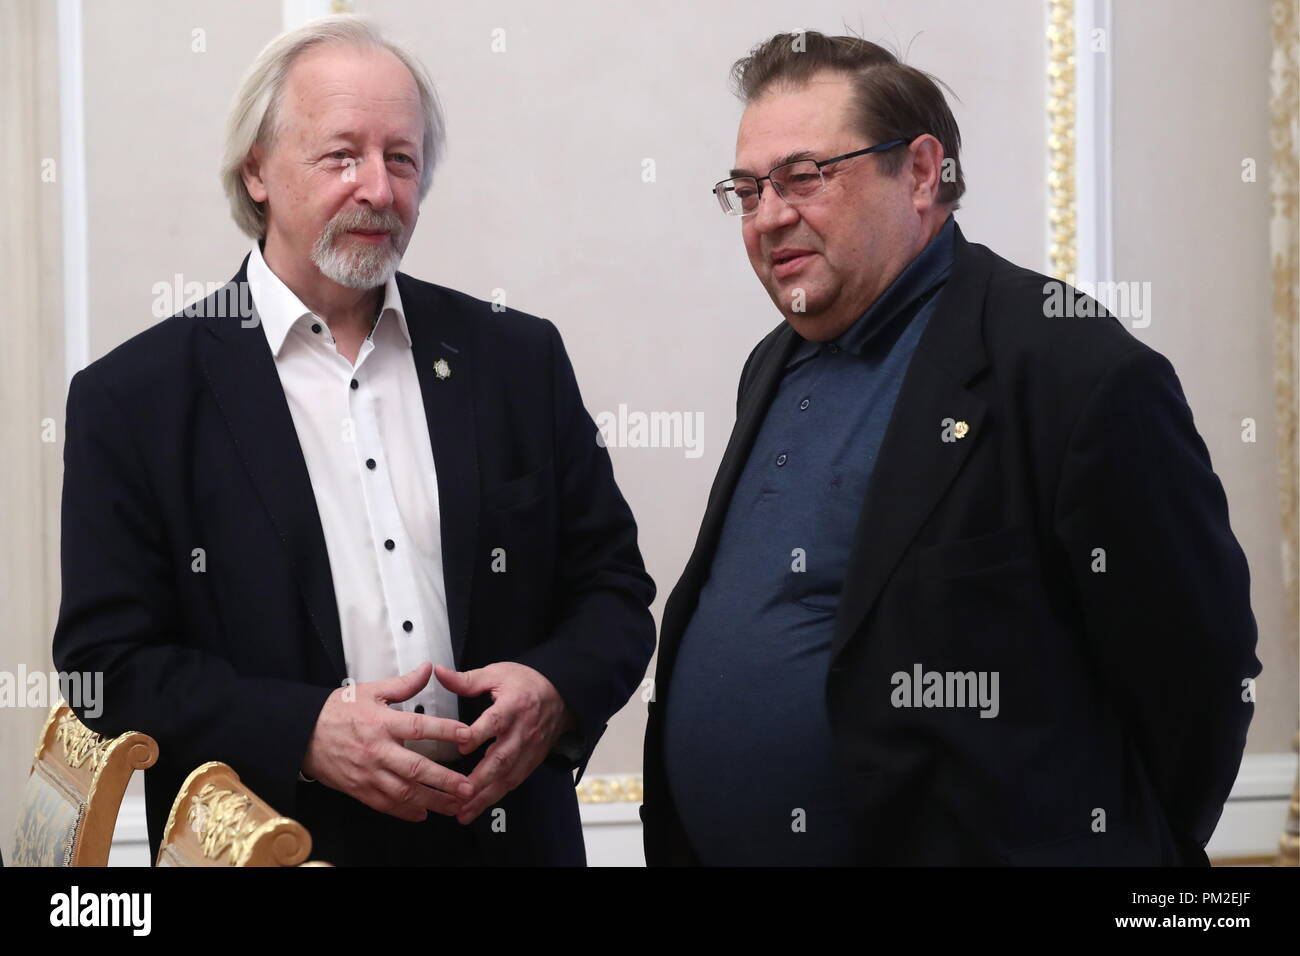 Moscow, Russia. 17th Sep, 2018. MOSCOW, RUSSIA - SEPTEMBER 17, 2018: Mikhail Afanasyev (L), director of the Russian State Historic Public Library, and Yuri Petrov, a member of the Presidium of the Russian Historical Society, director of the Russian History Institute at the Russian Academy of Sciences (RAS), during a meeting of the Editorial Board of the Presidential Historical Library project at the offices of the Russian Historical Society. Stanislav Krasilnikov/TASS Credit: ITAR-TASS News Agency/Alamy Live News - Stock Image